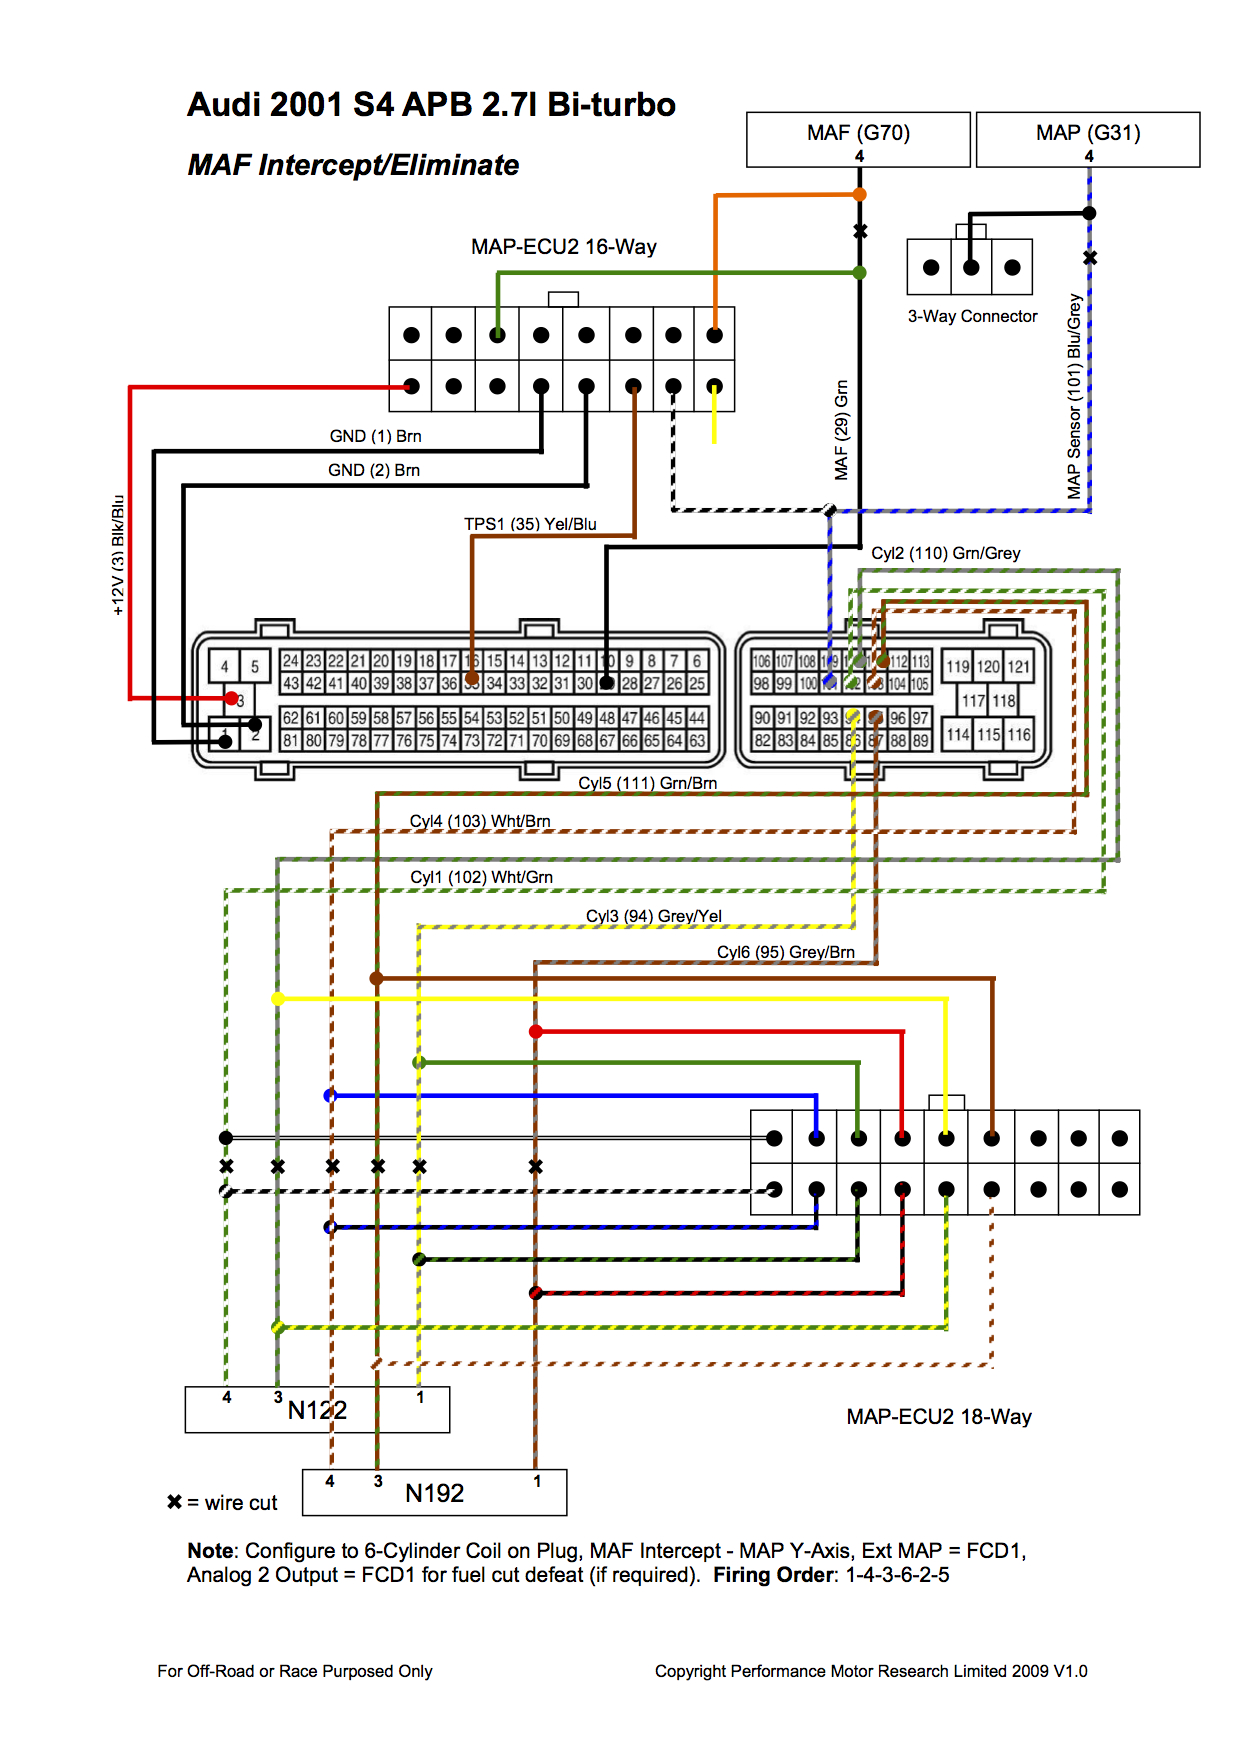 Audi S4 20011 300zx wiring diagram 300zx fuel system diagram \u2022 wiring diagrams 2015 honda fit radio wiring diagram at gsmx.co